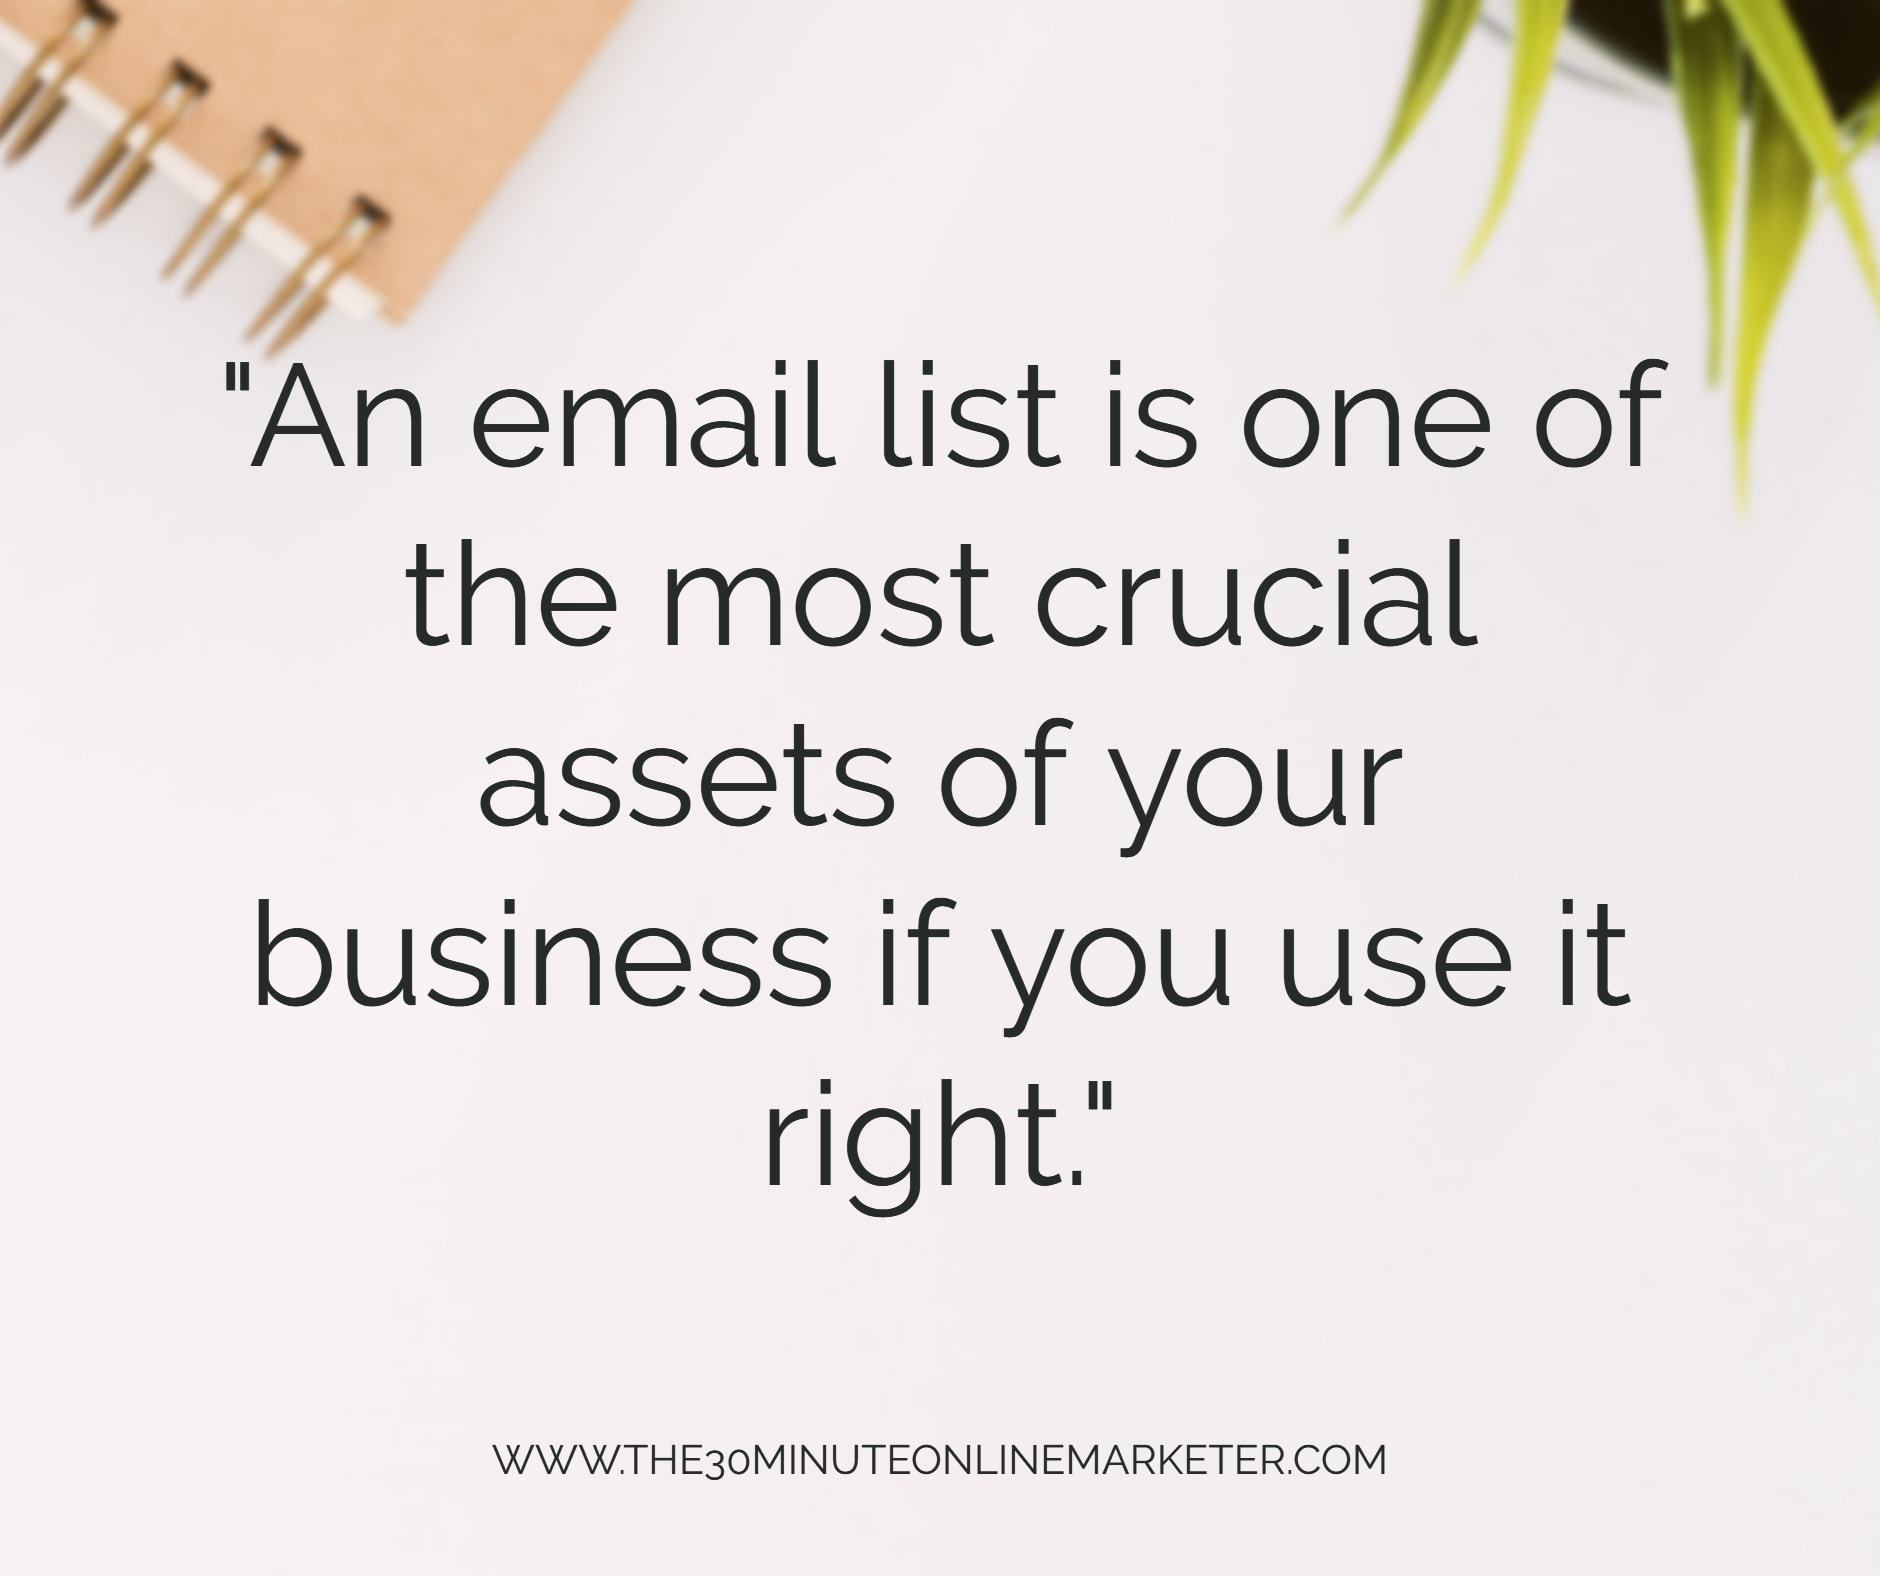 An email list is one of the most crucial assets of your business if you use it right